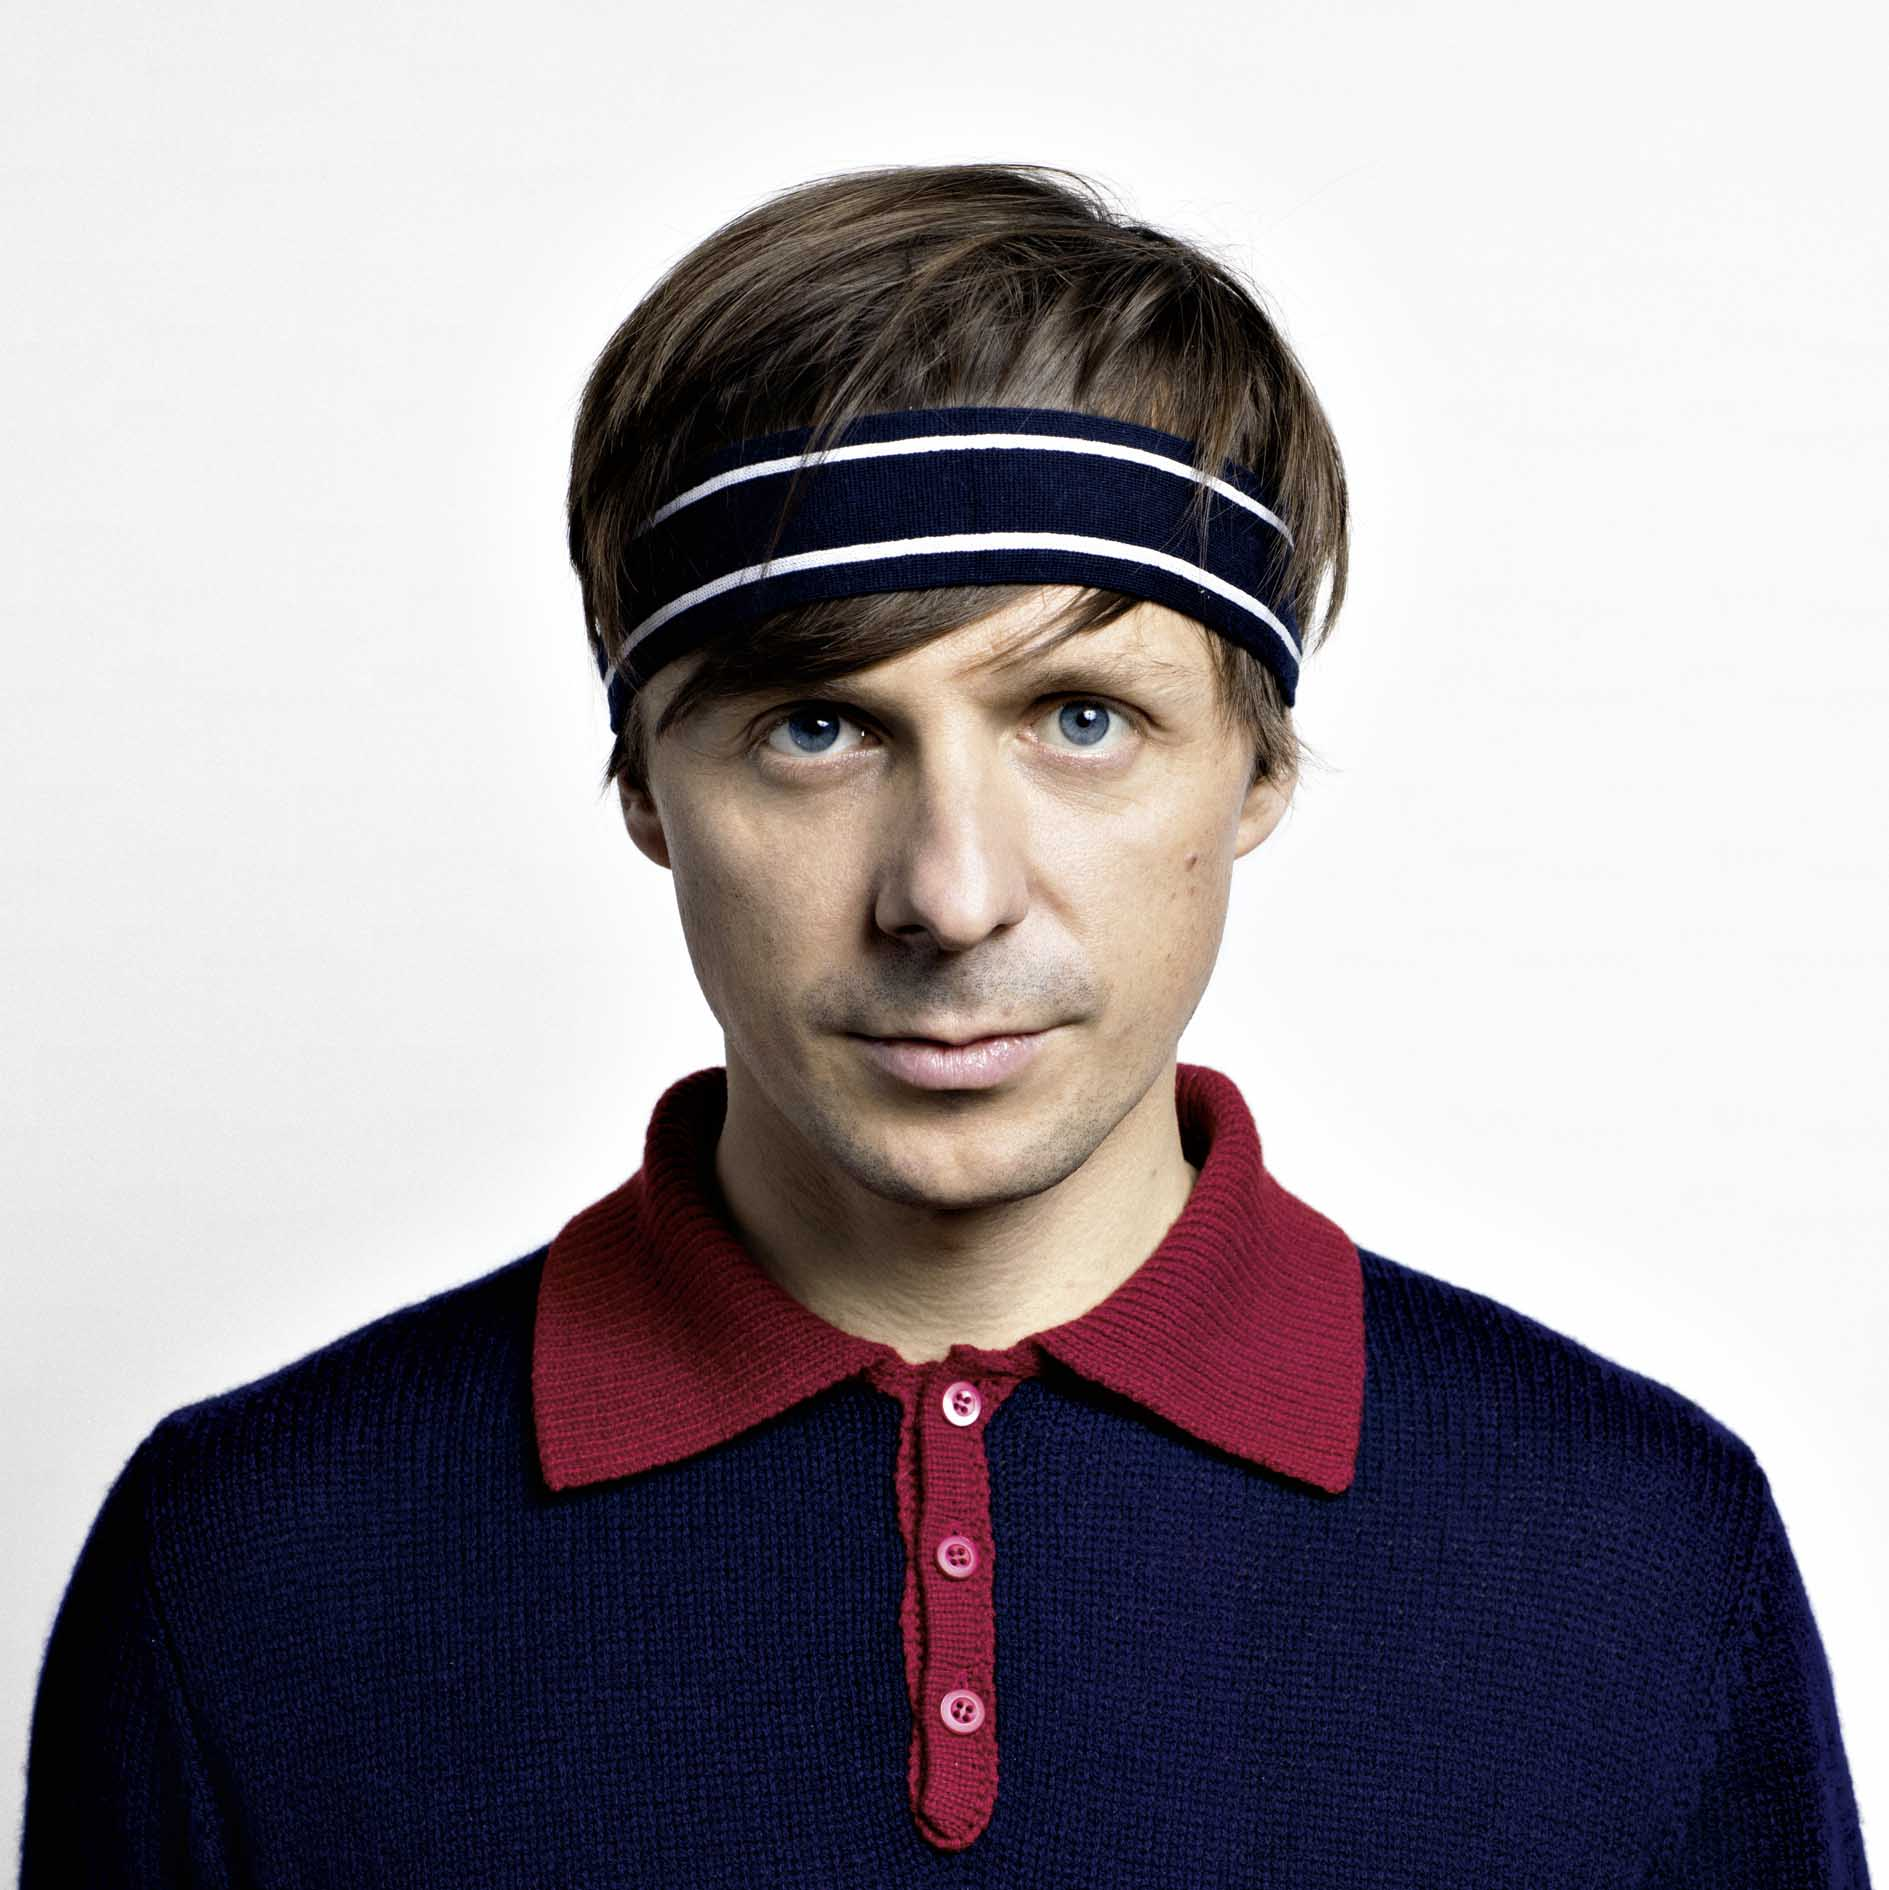 Martin Solveig High Quality Background on Wallpapers Vista